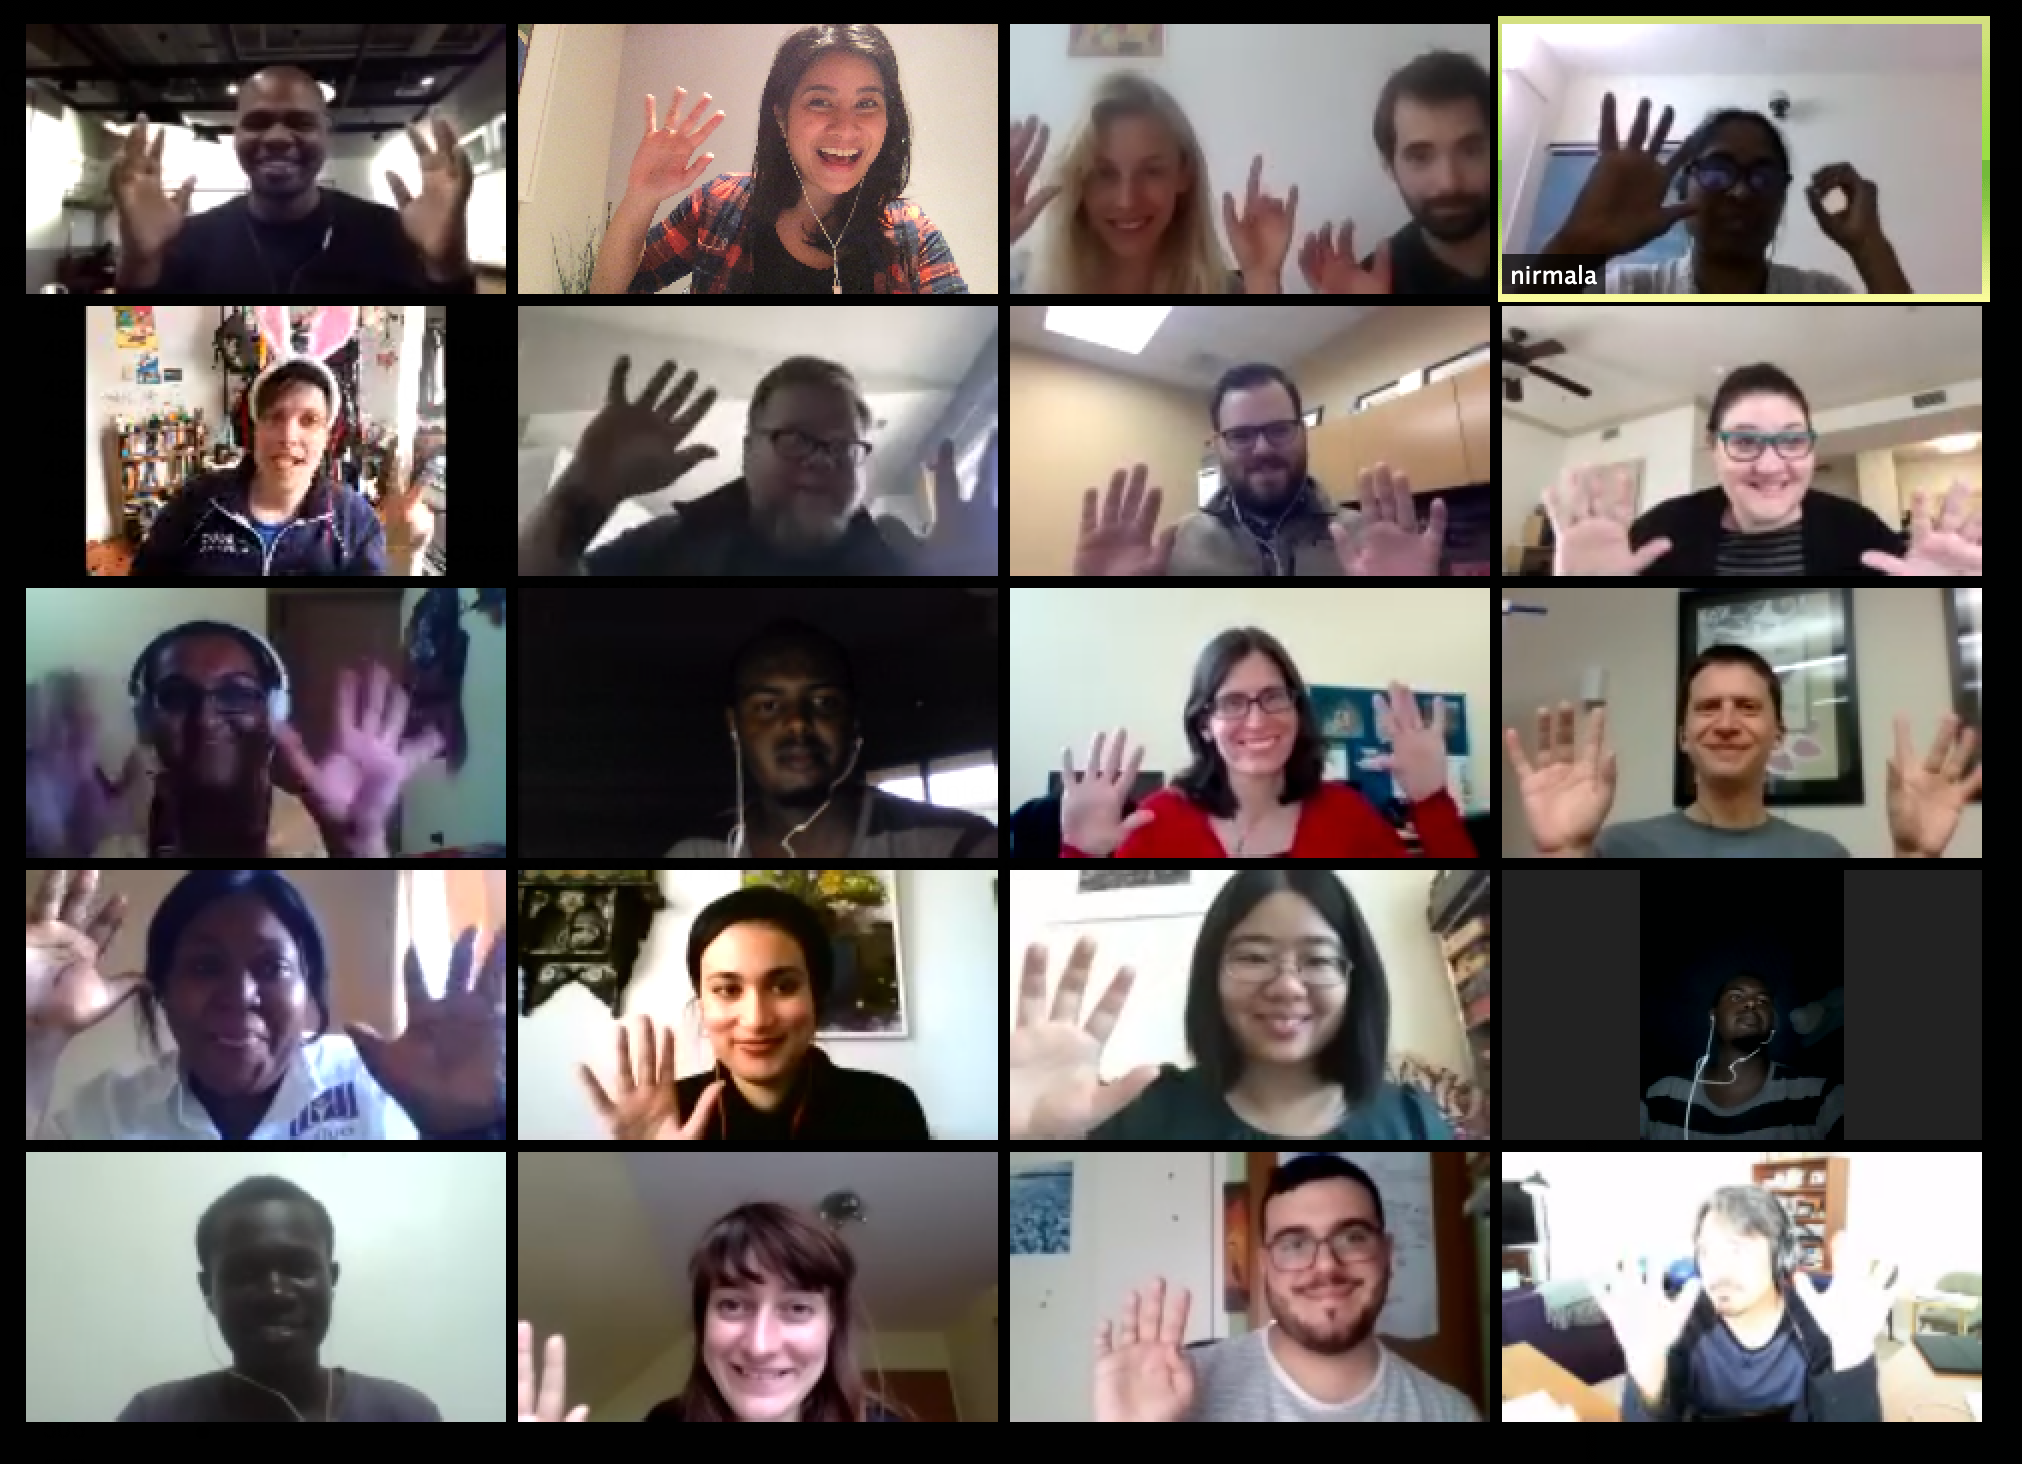 The final cohort call during Open Leaders 7, containing a Zoom call with 16 different videos in a 4x4 grid - everyone is waving at their camera.